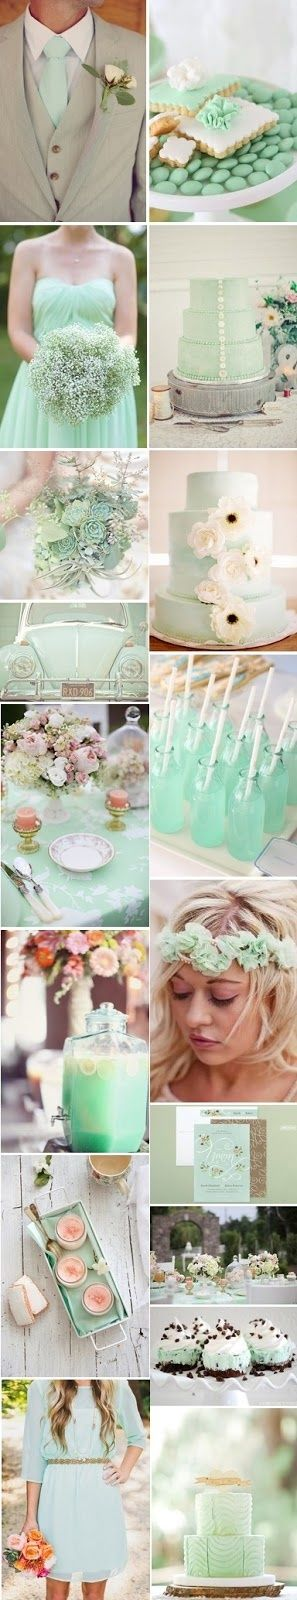 685 Best Mint Green Weddings Images On Pinterest Wedding Inspiration Baking And Bridal Gowns